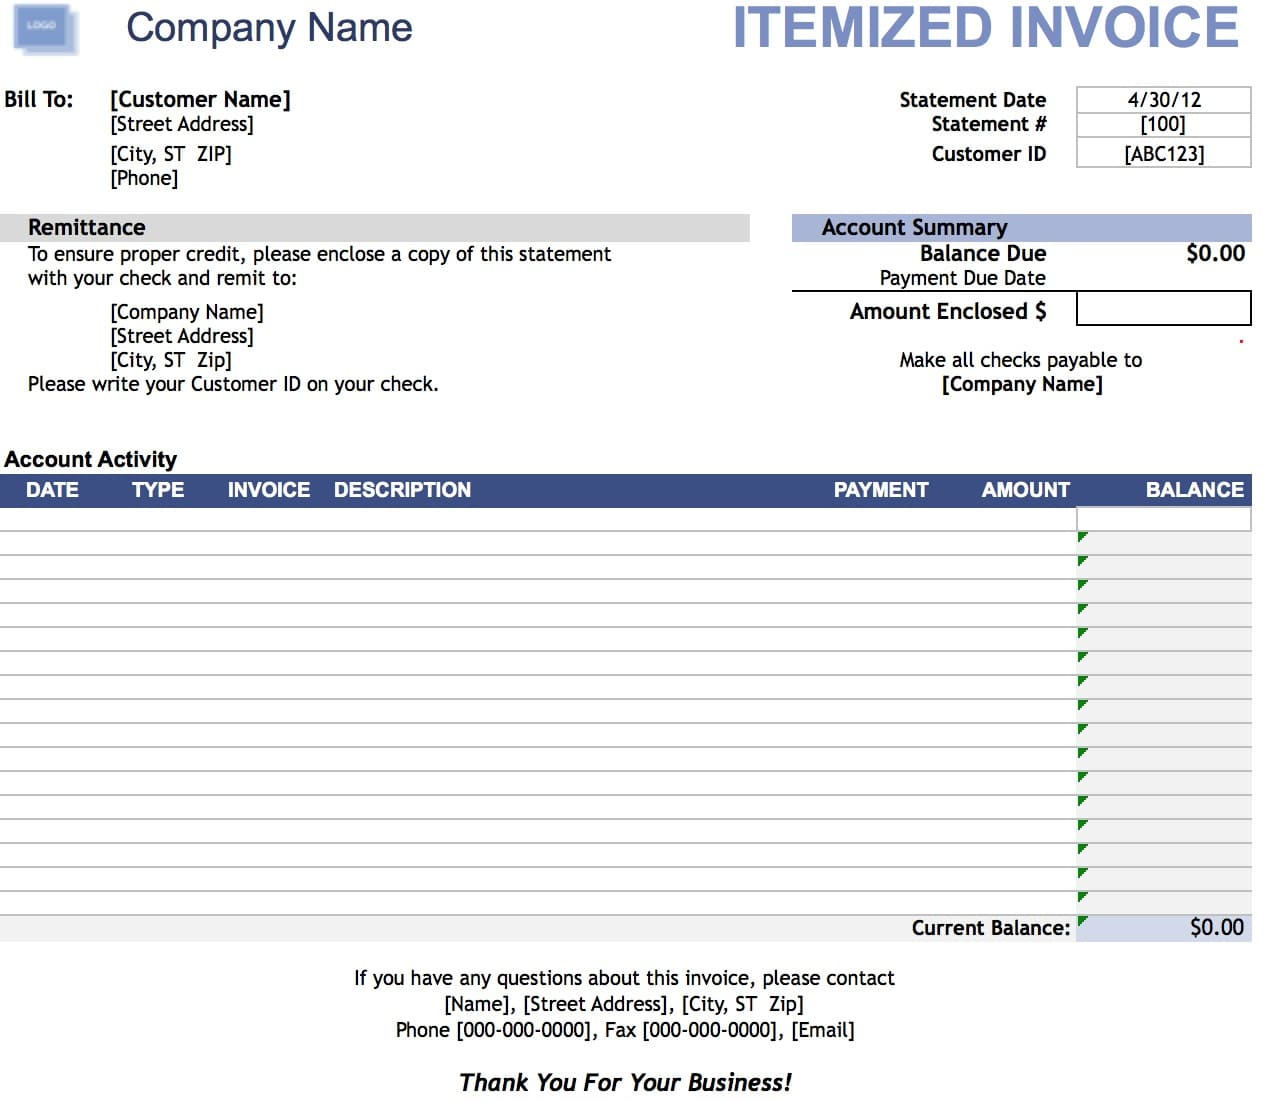 Itemized Bills Template Demirediffusion